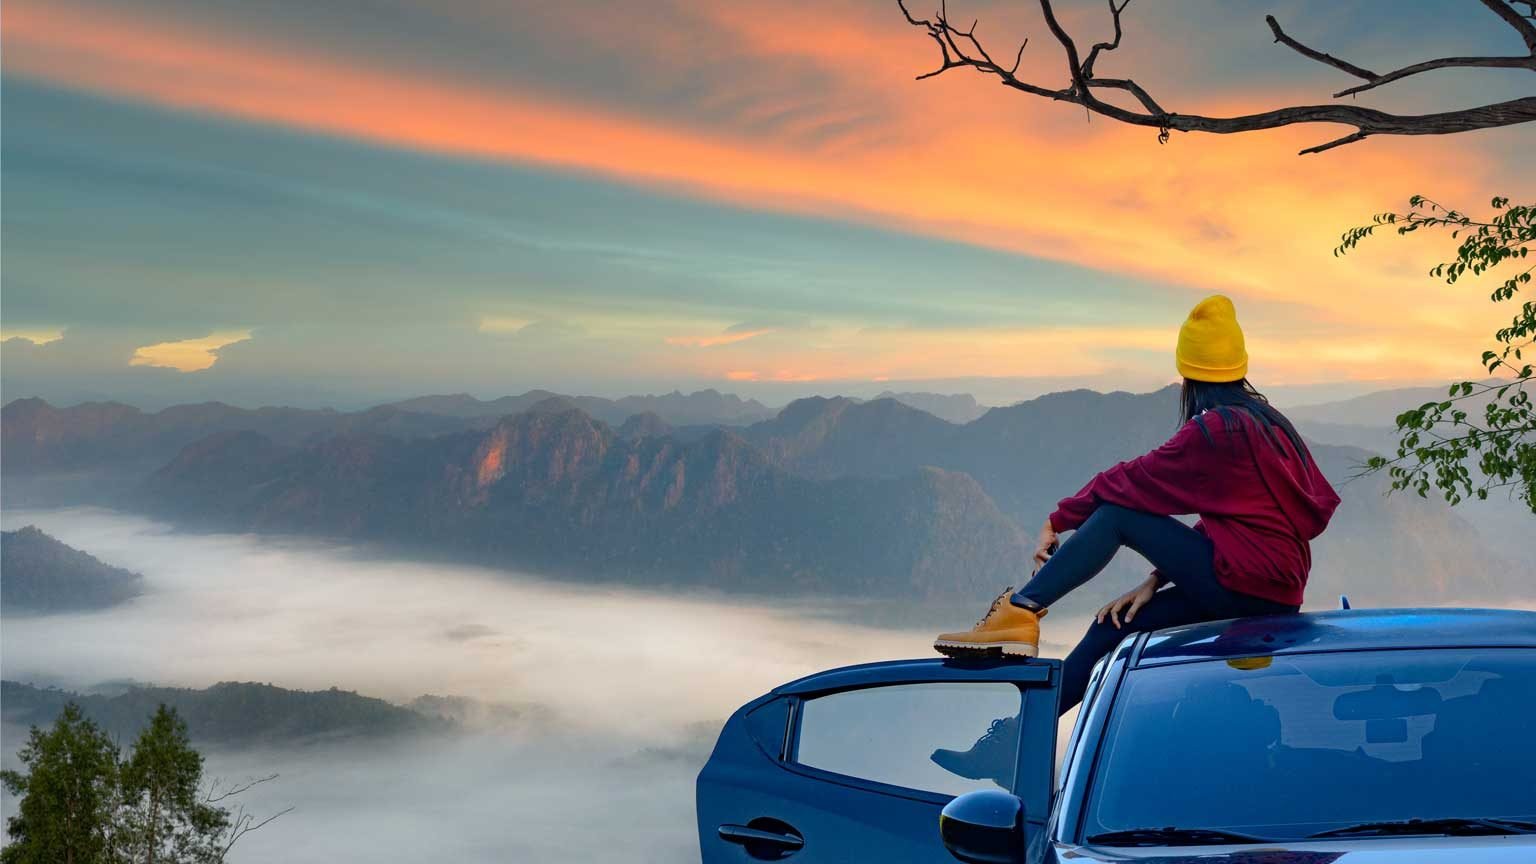 woman sitting on the car roof with enjoy the nature of mist in the mountain at sunrise morning